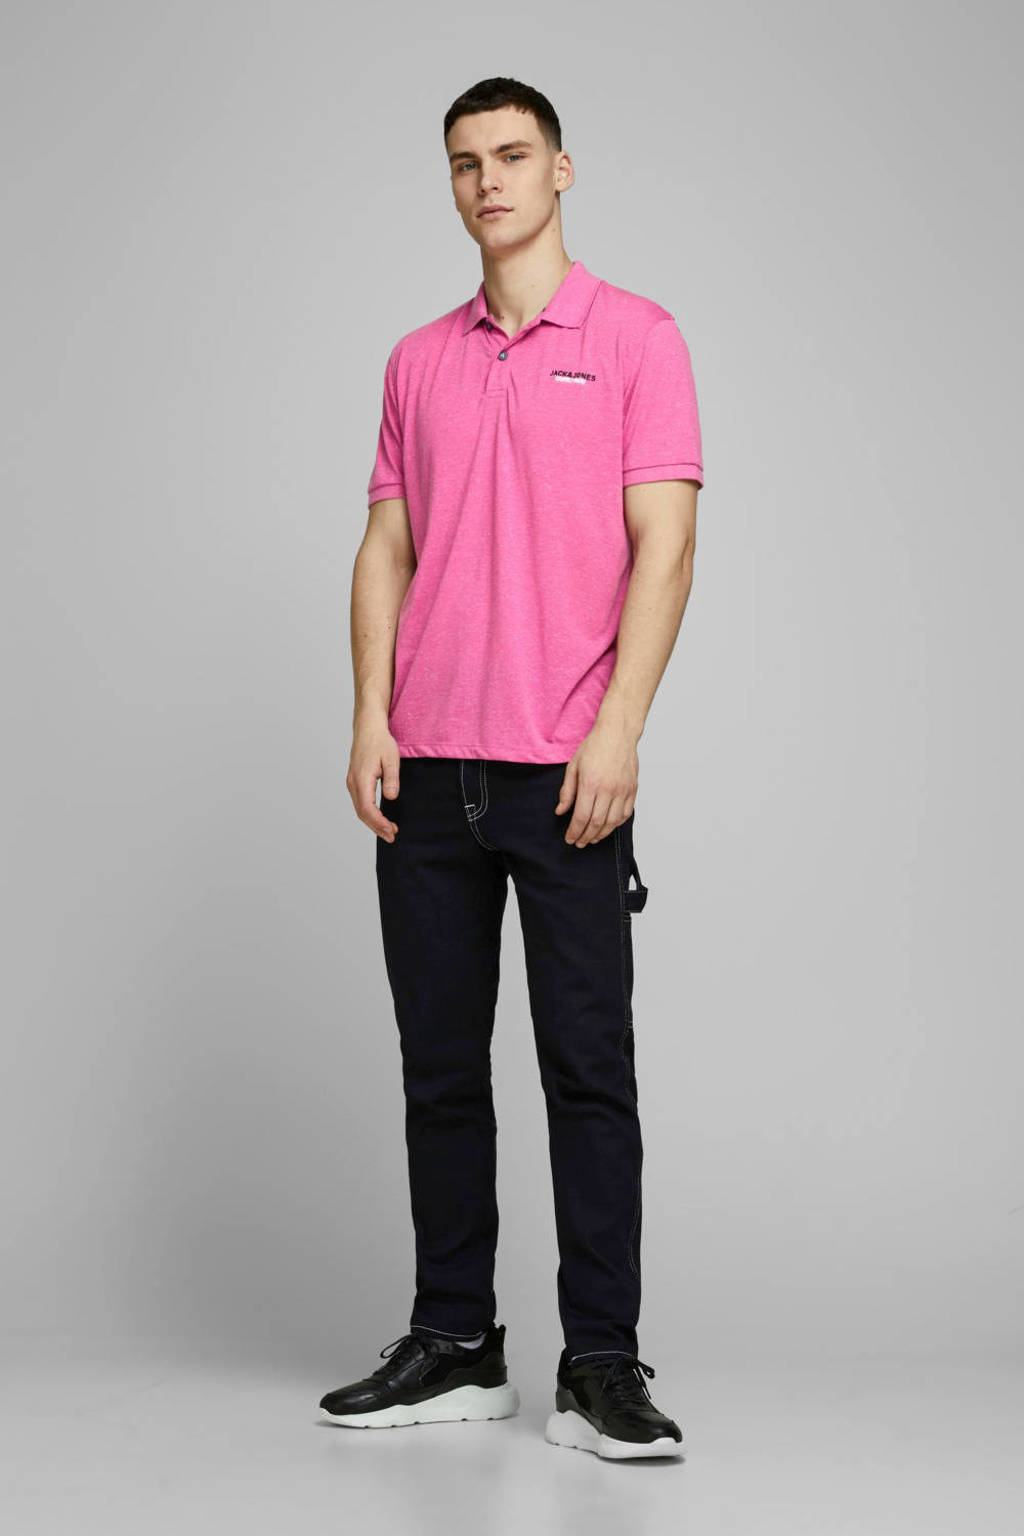 JACK & JONES CORE gemêleerde slim fit polo roze, Roze